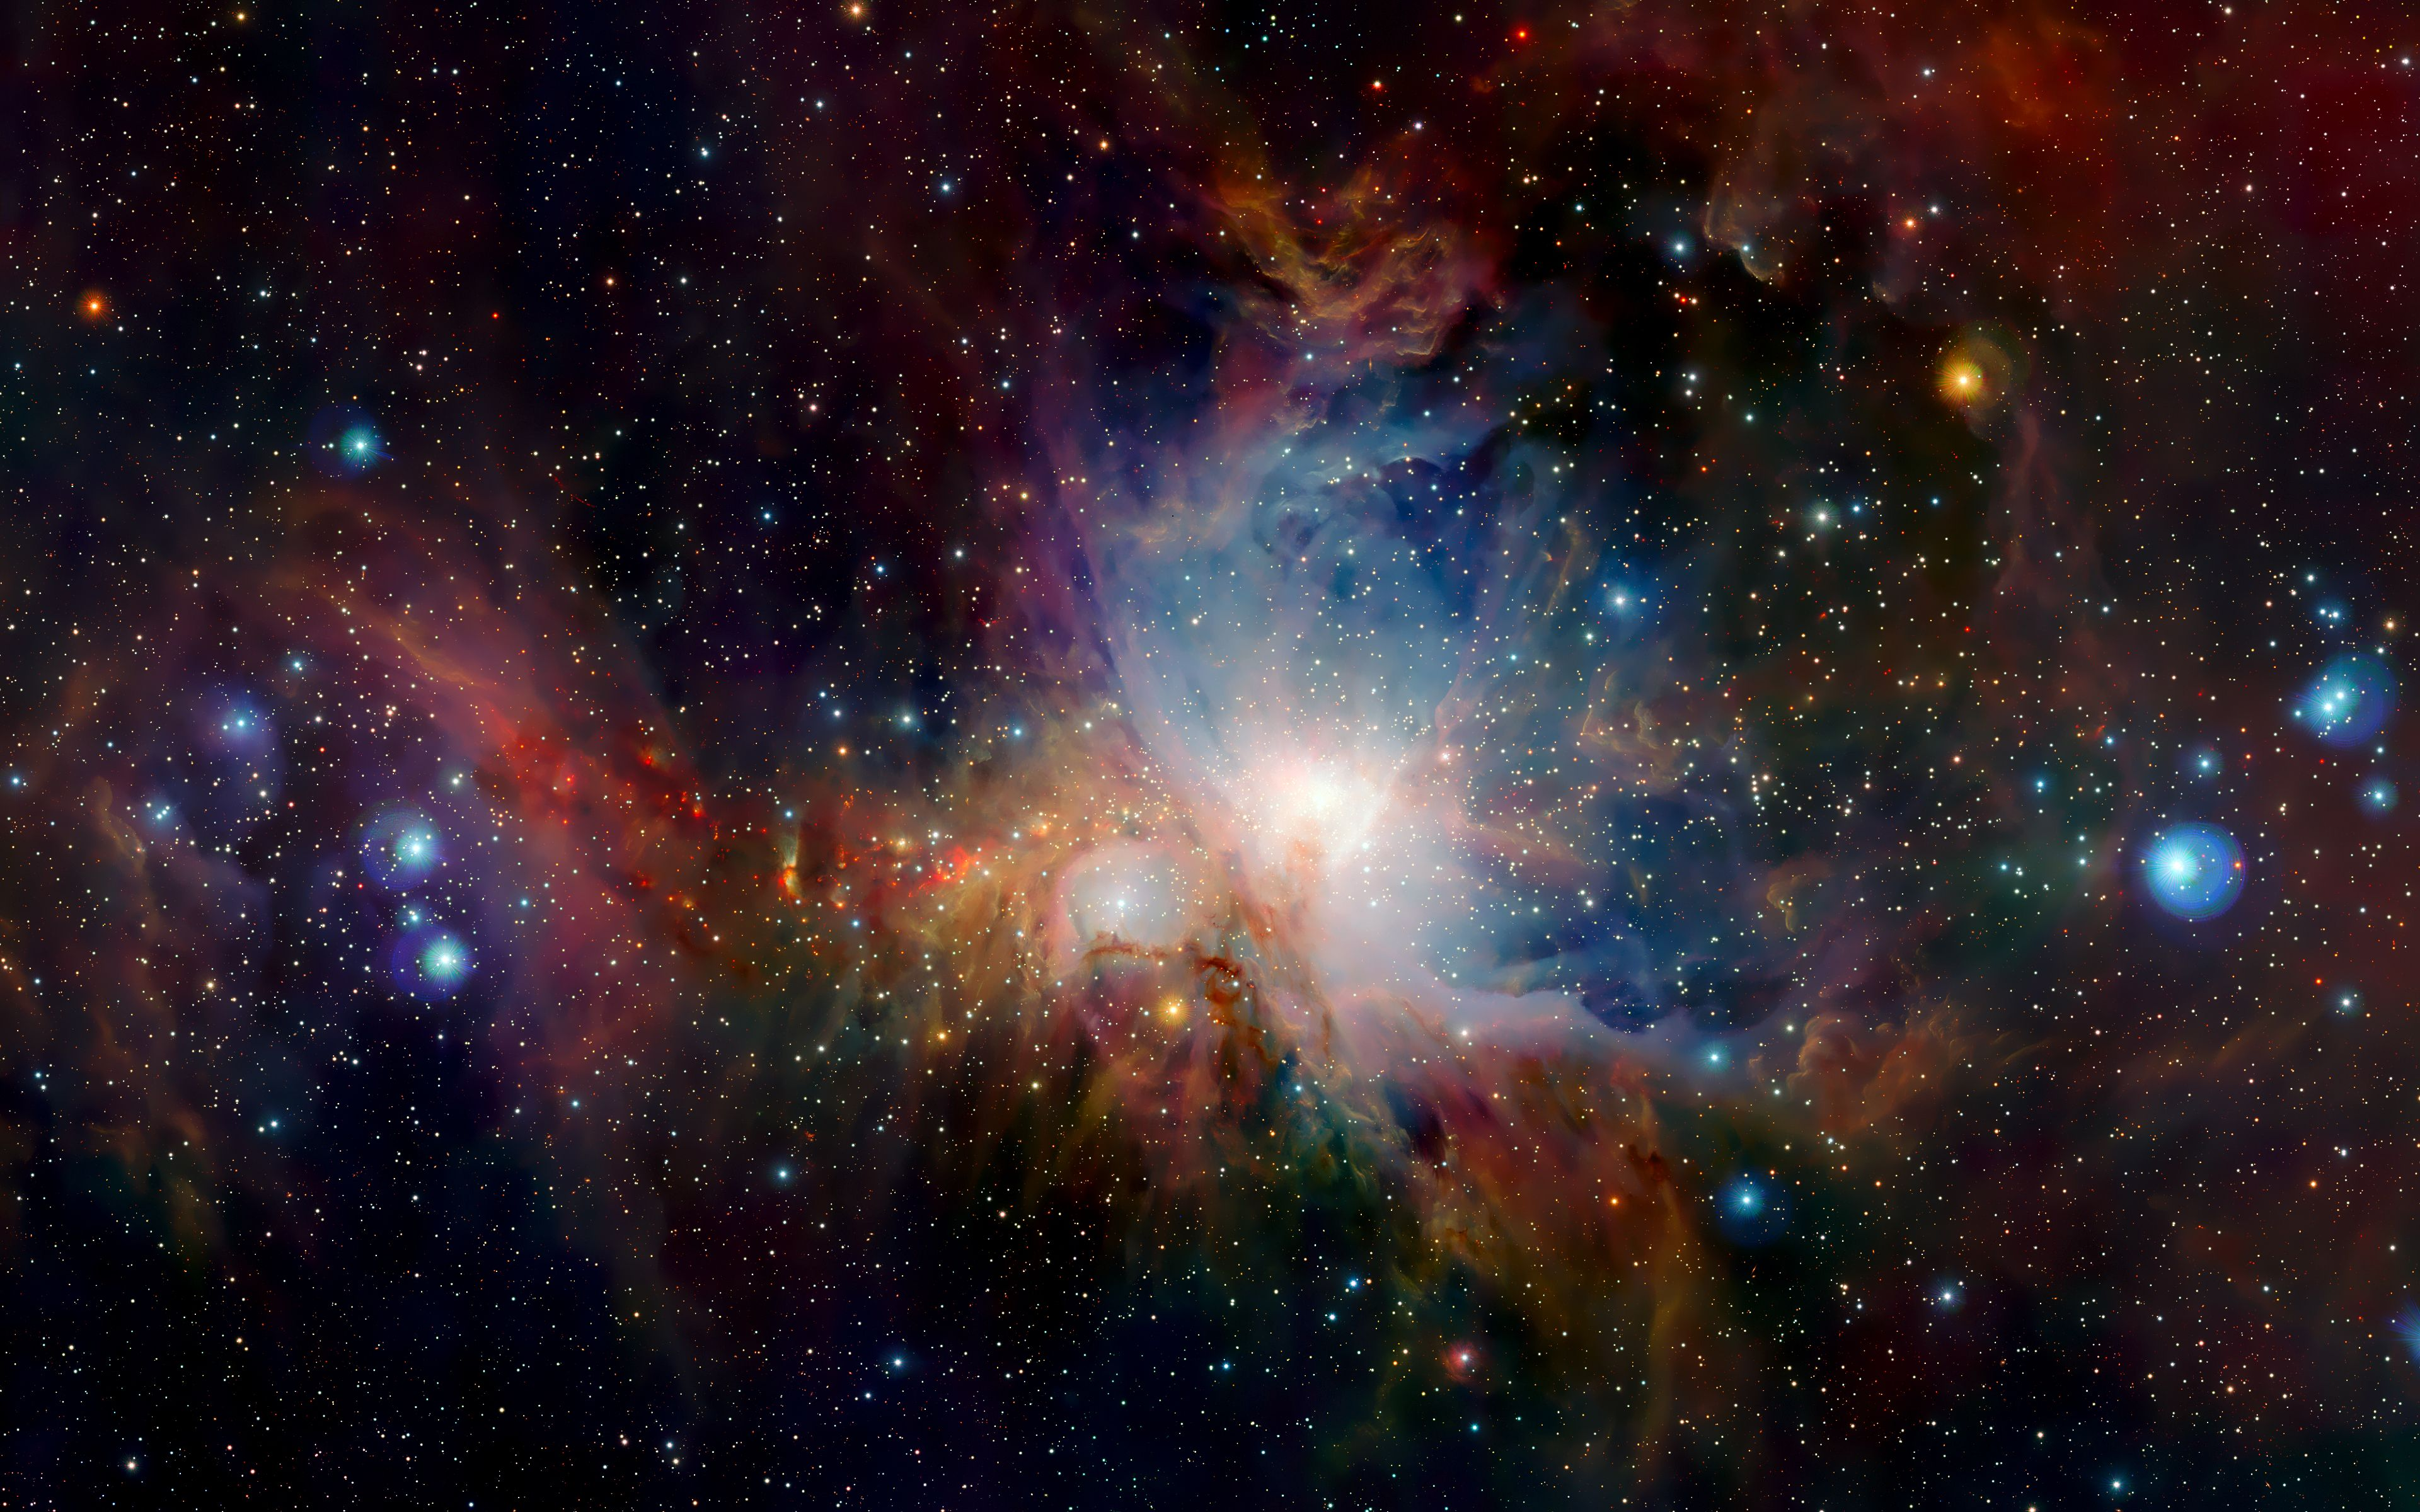 34+ Best Galaxy Background Wallpapers - Web Resources Free ...